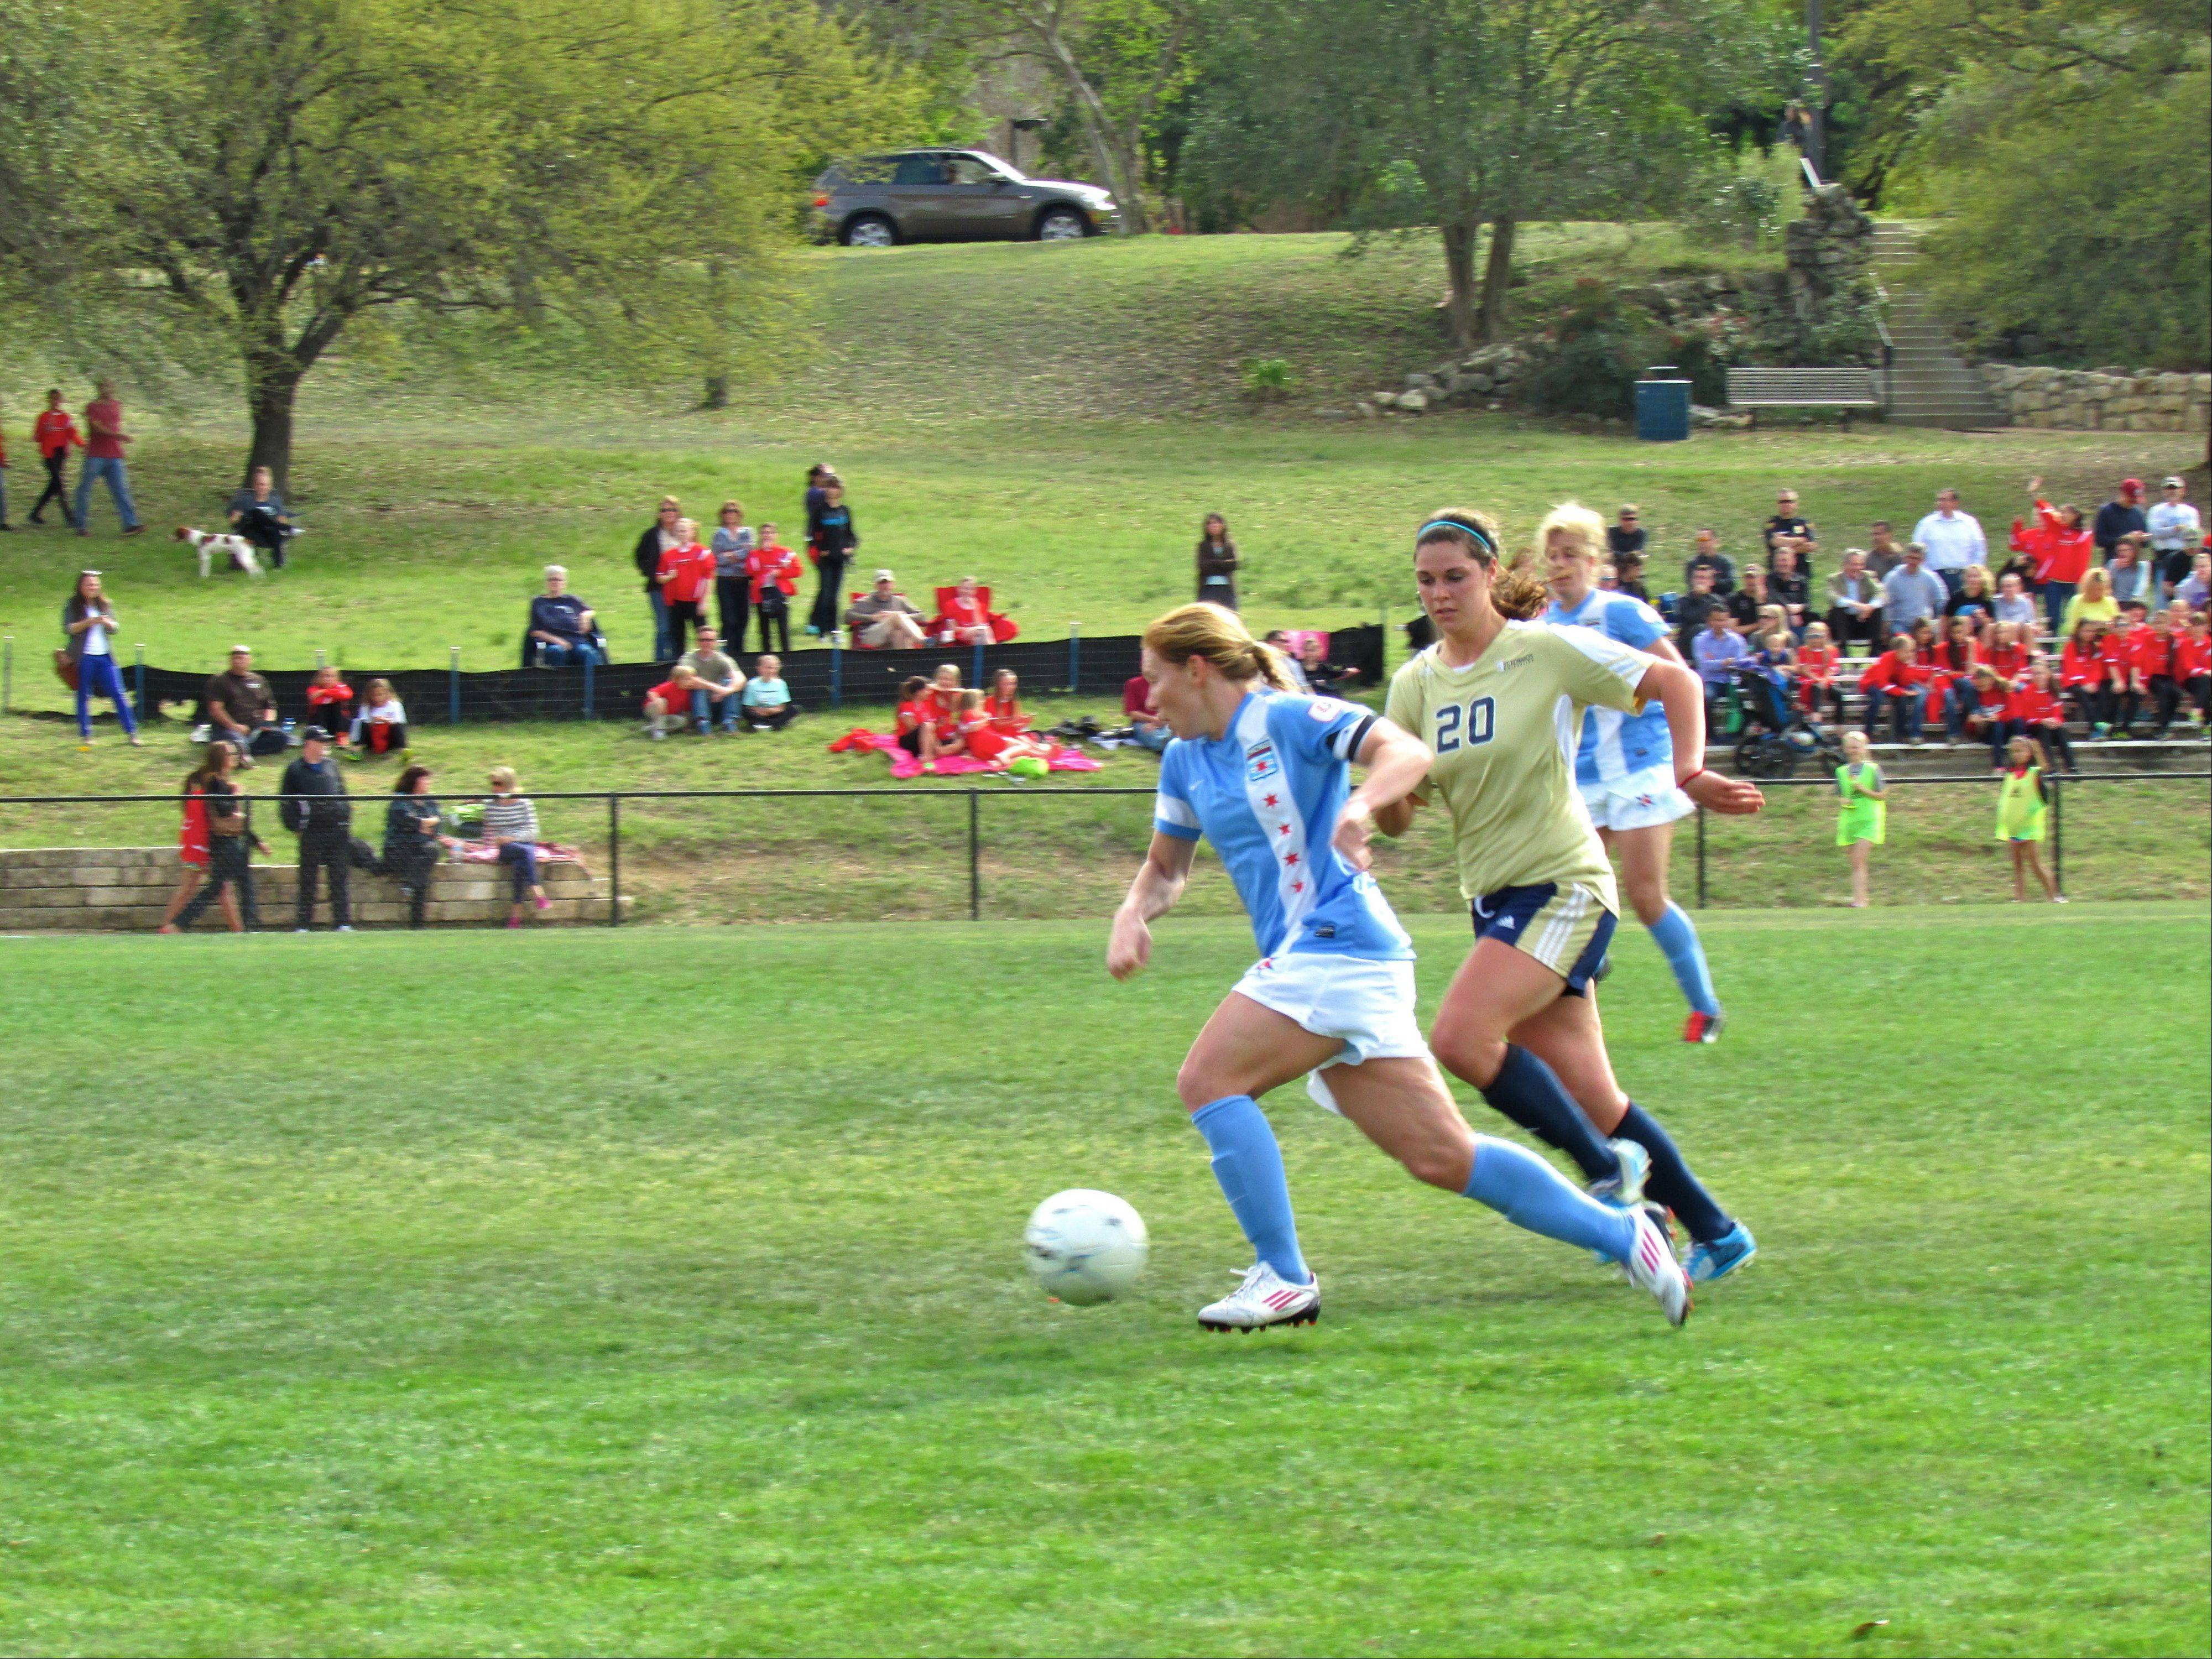 Chicago Red Stars midfielder/forward Lori Chalupny scored two goals Wednesday in the NWSL team's 8-0 exhibition match against St. Edward's University in Austin, Texas.